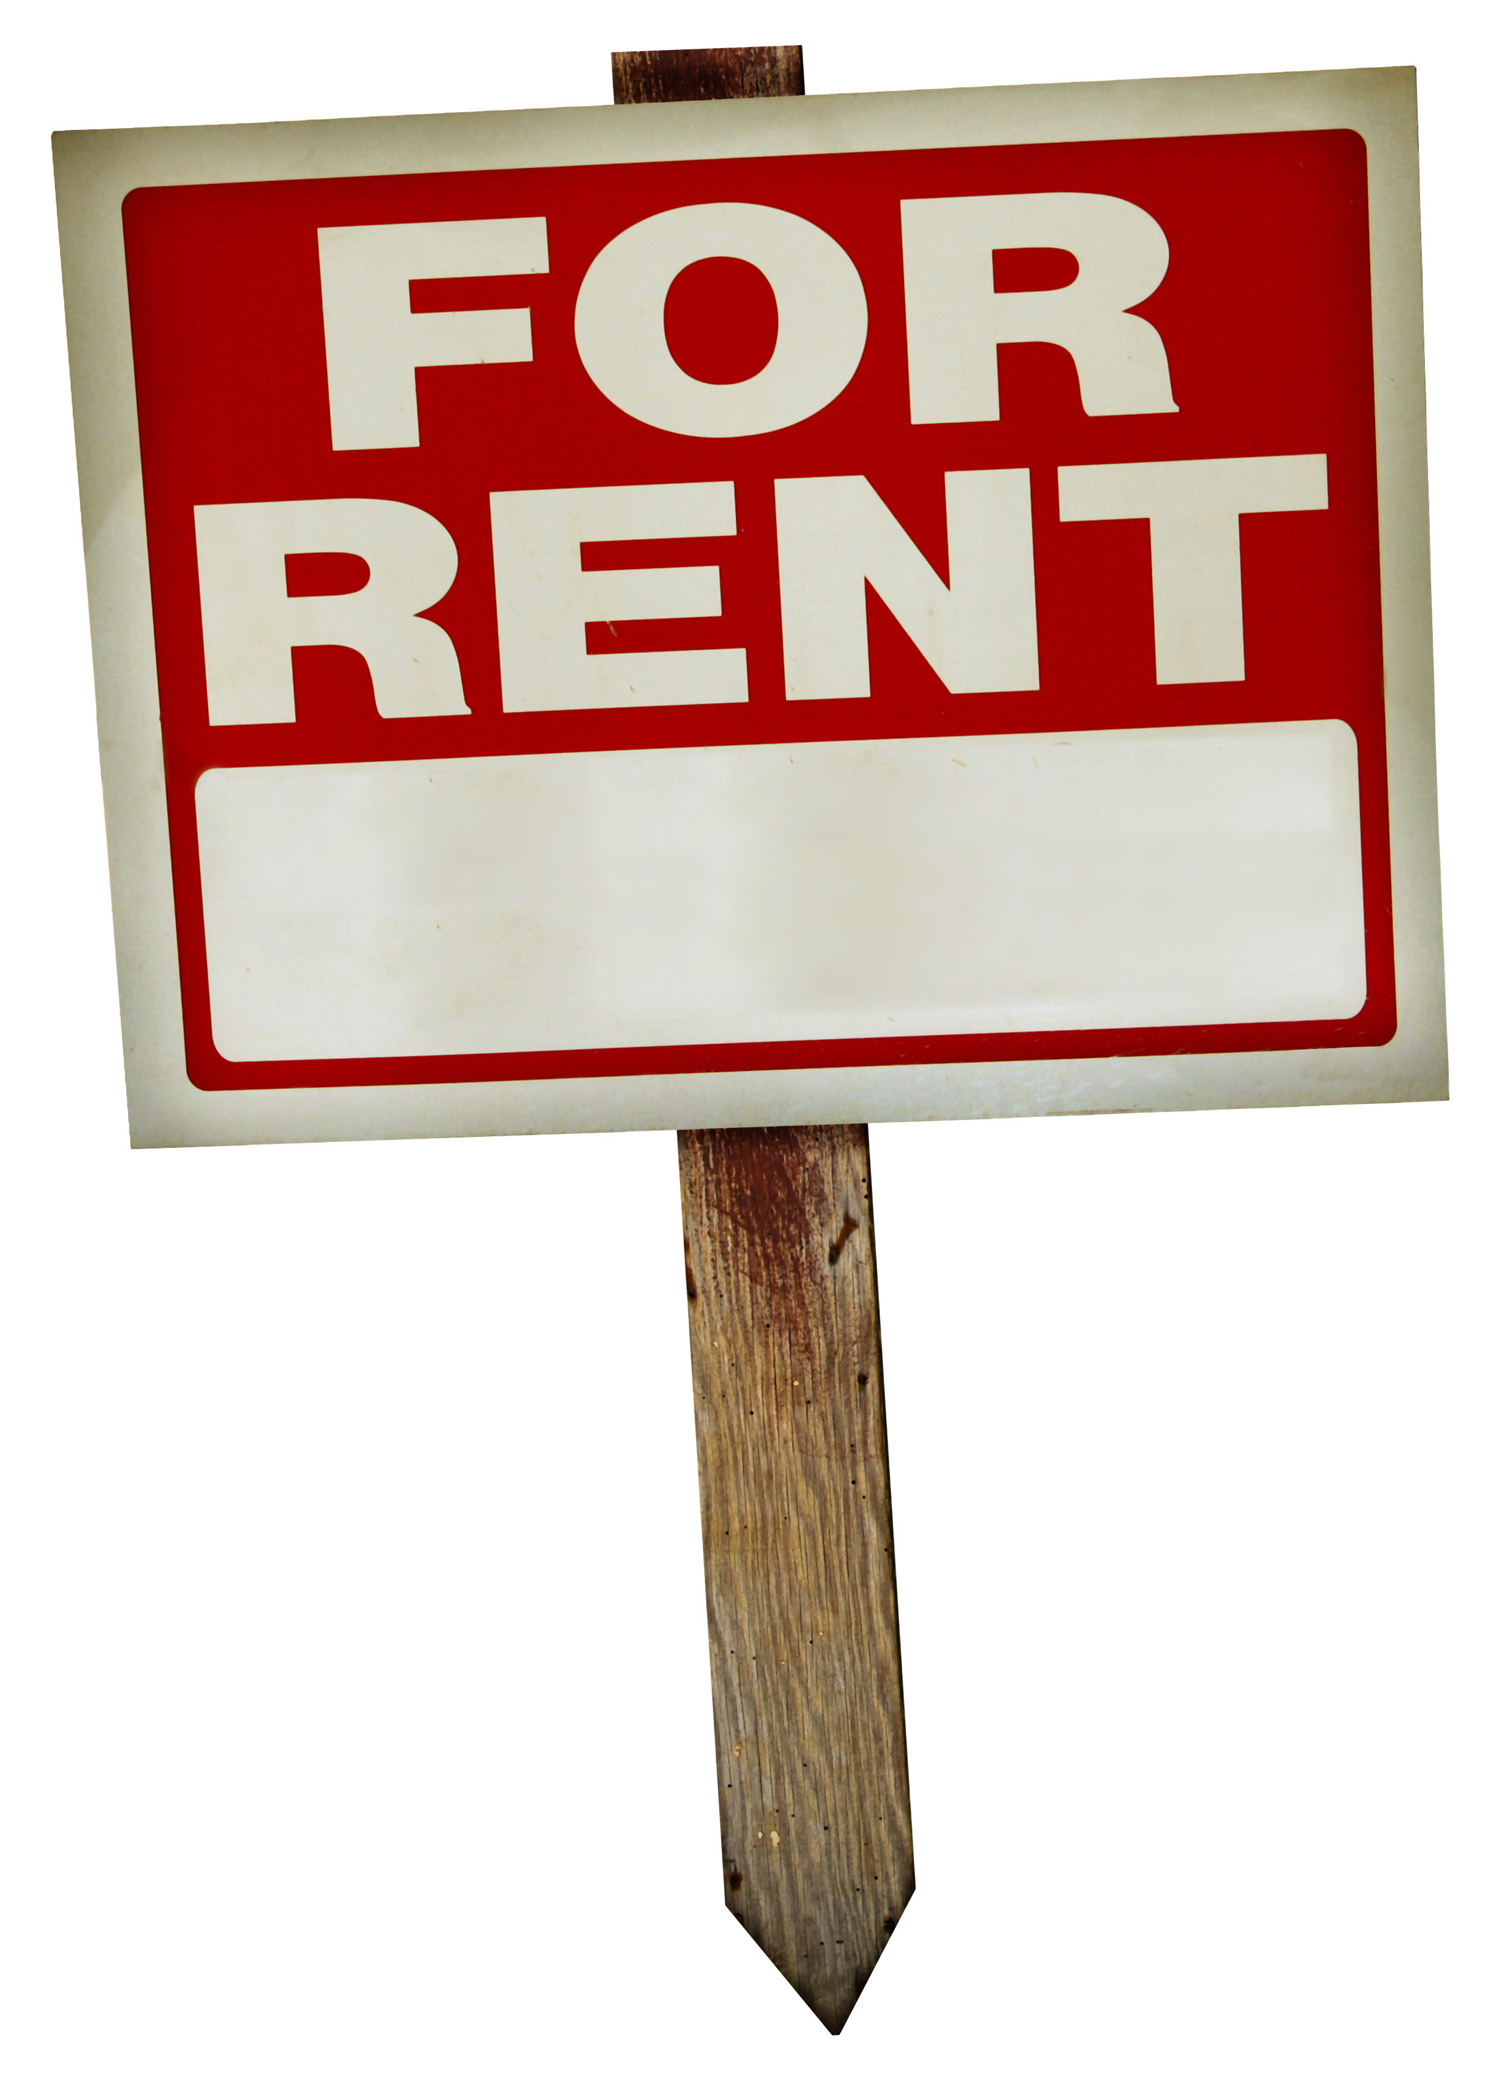 Craigslist Apartments For Rent Fort Pierce Florida